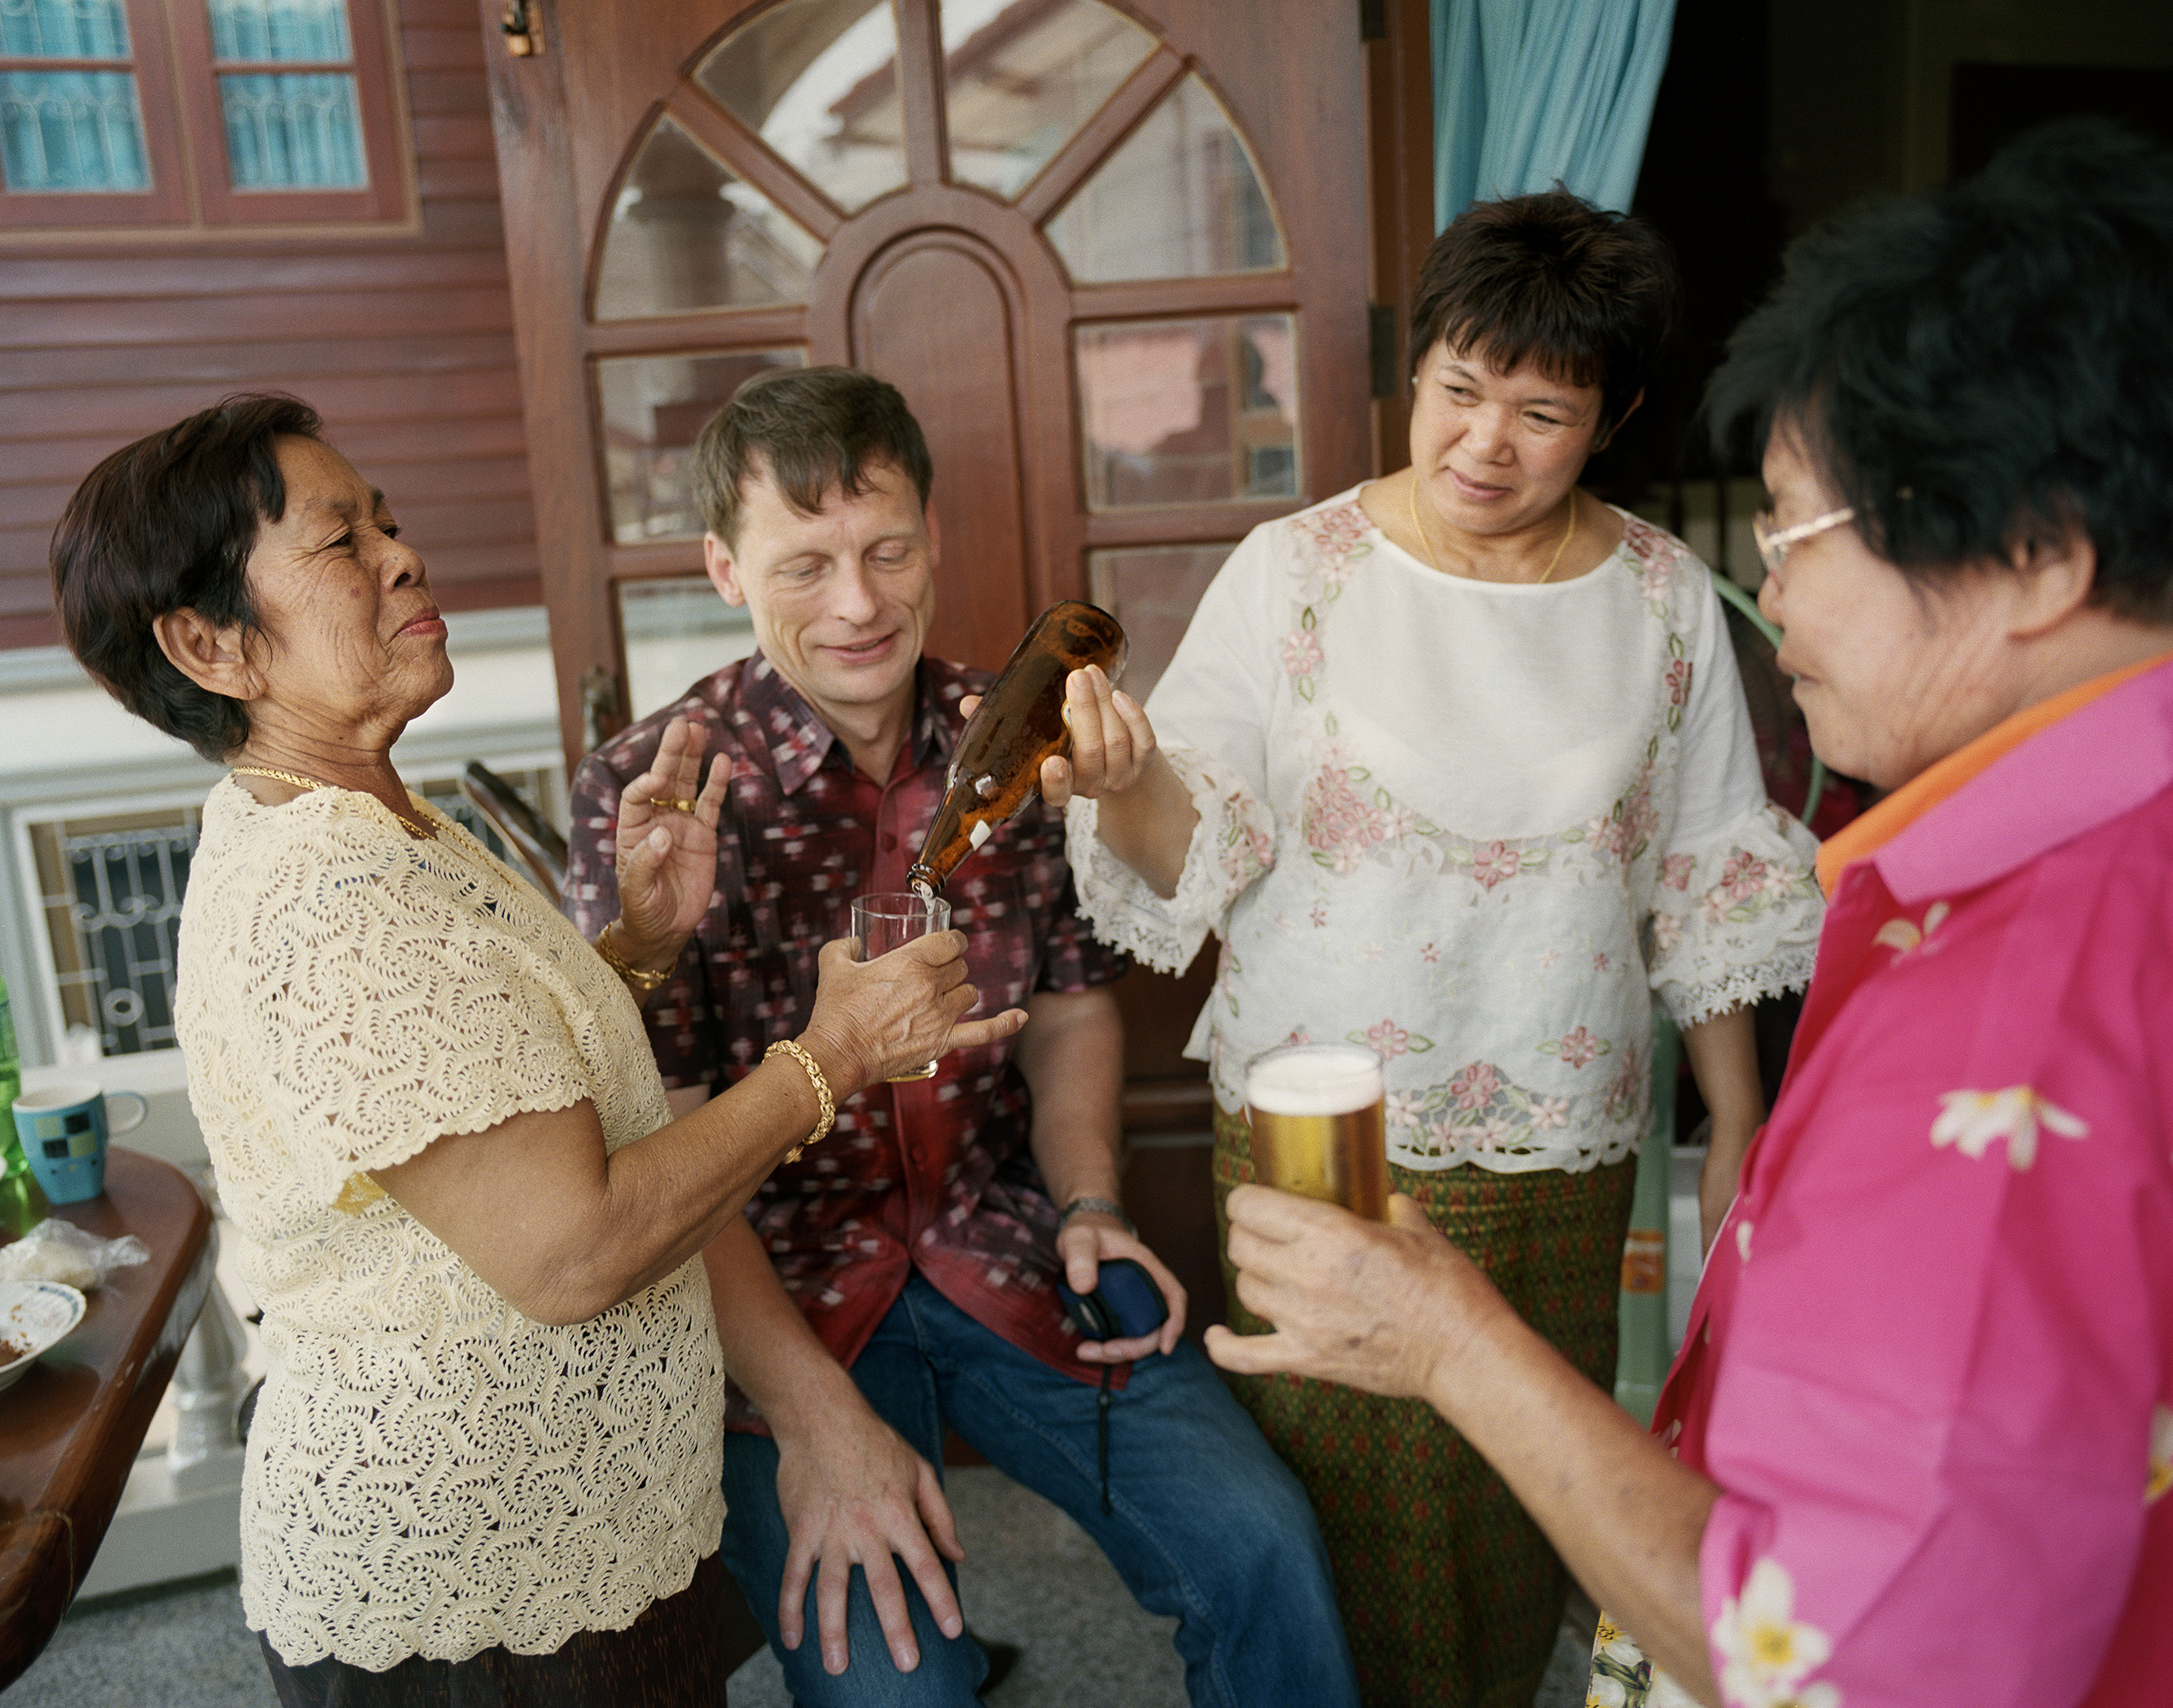 Sombat serves beer to her cousin during a party at the family's home, Kaeng Khro, 2010.